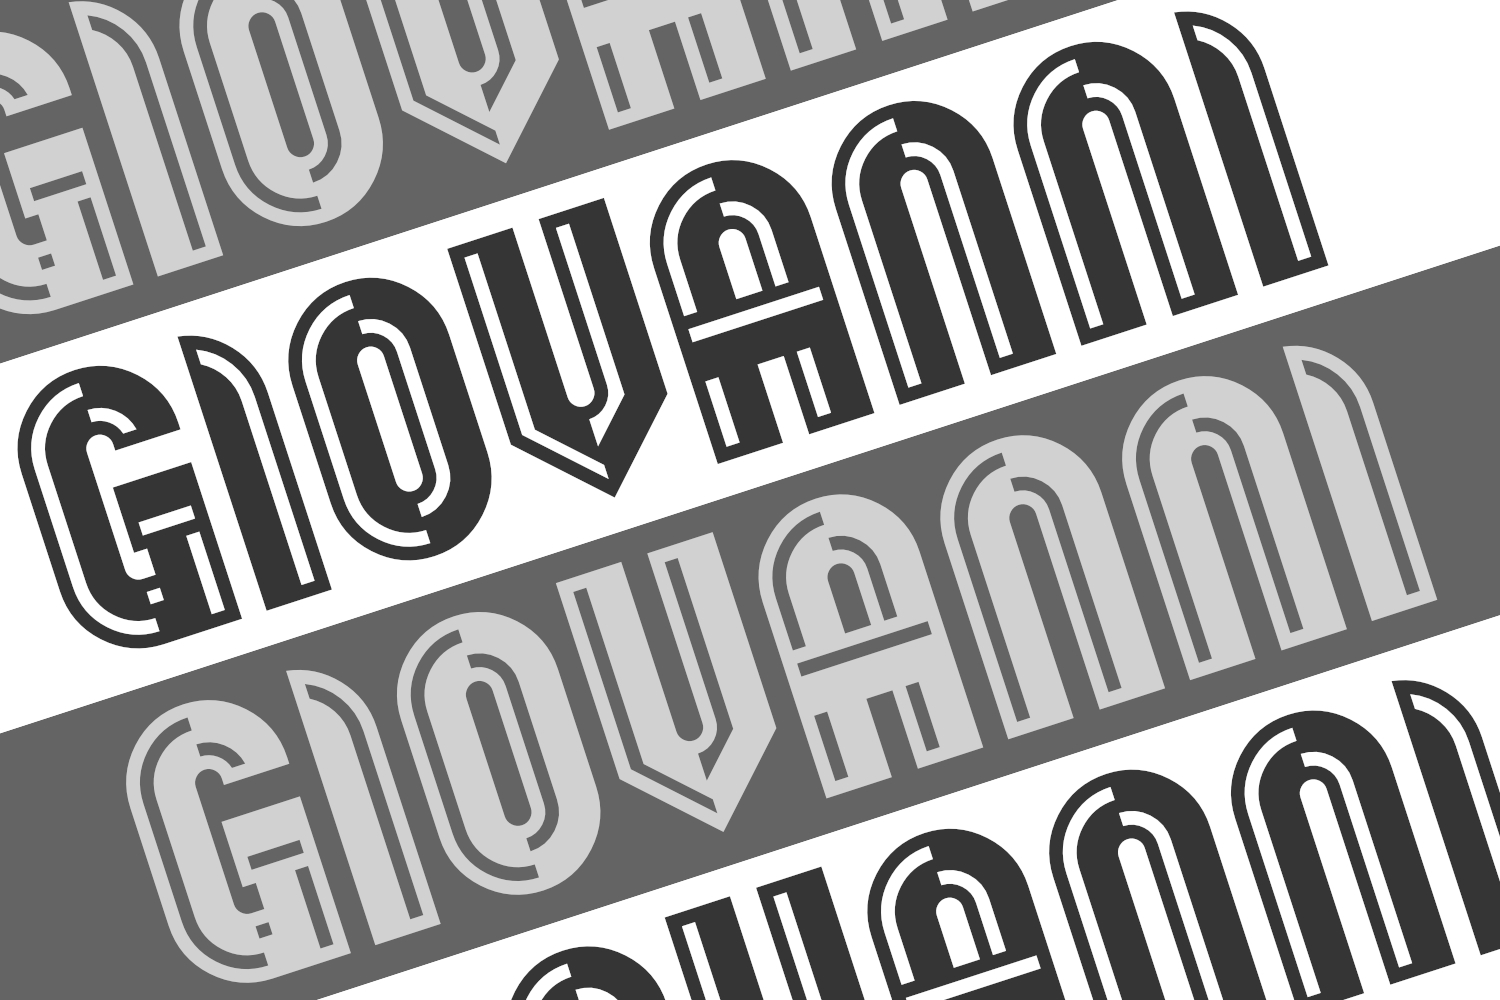 Giovanni Display Font By thorchristopherarisland